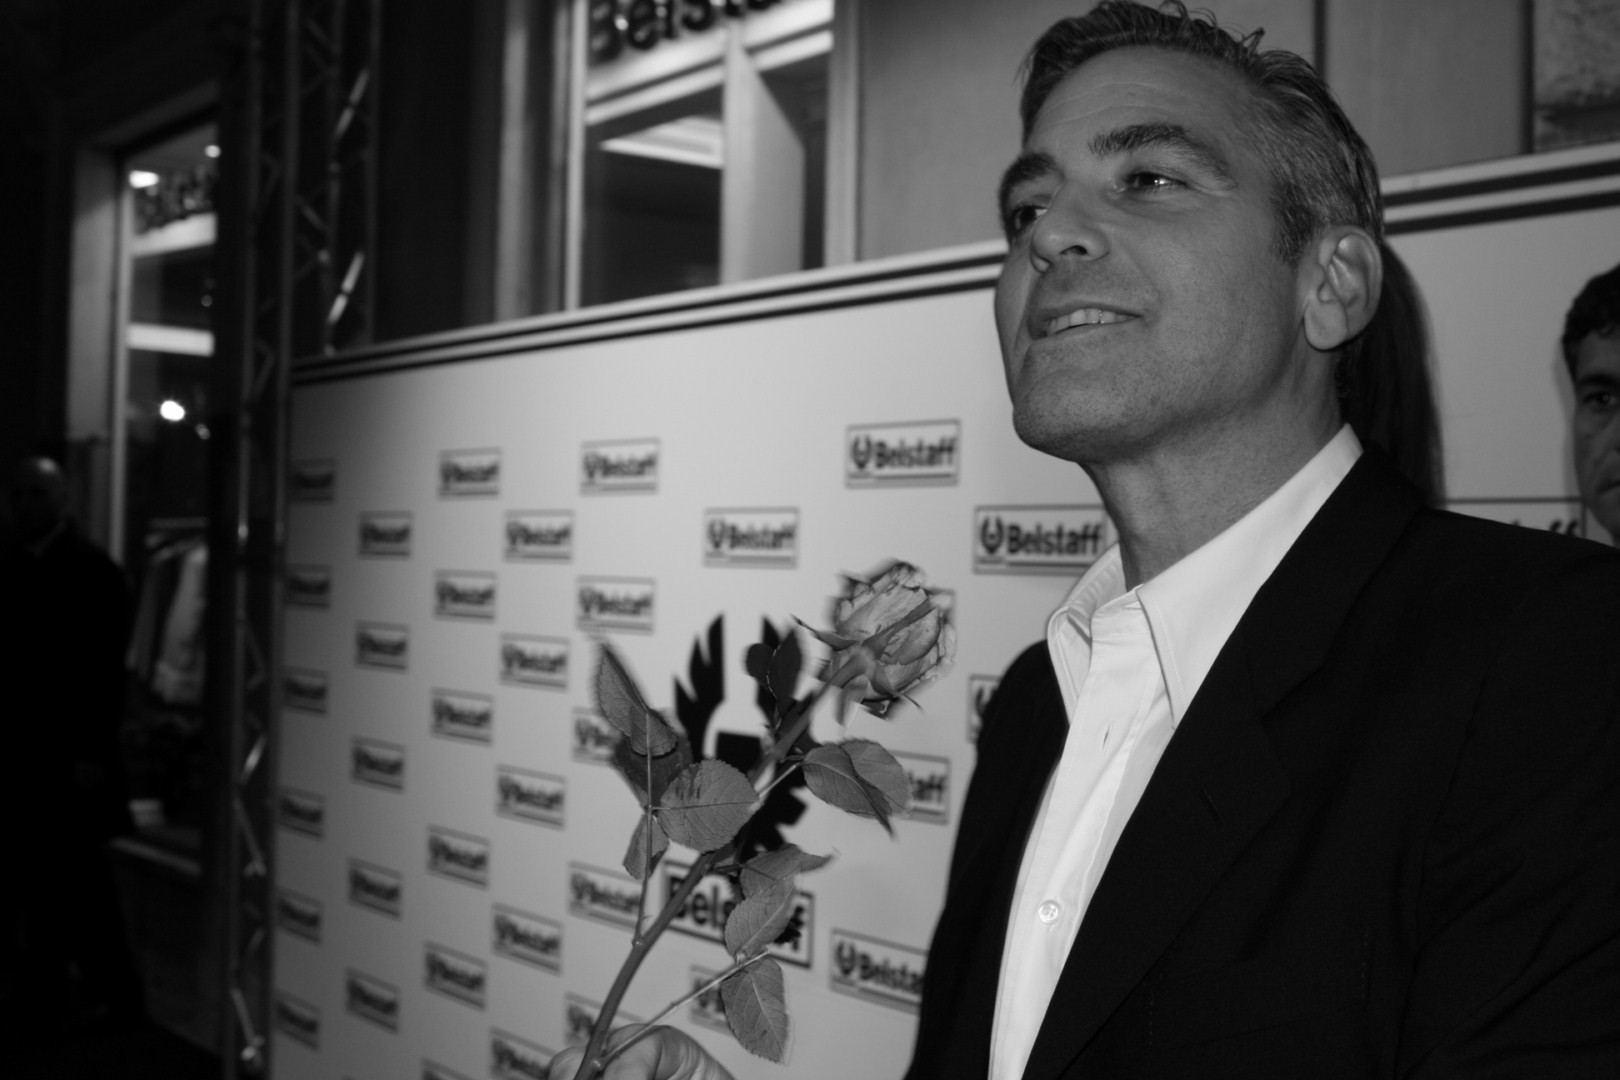 George Clooney - Actor, director, producer | All rights reserved | Copyright Clothing Company